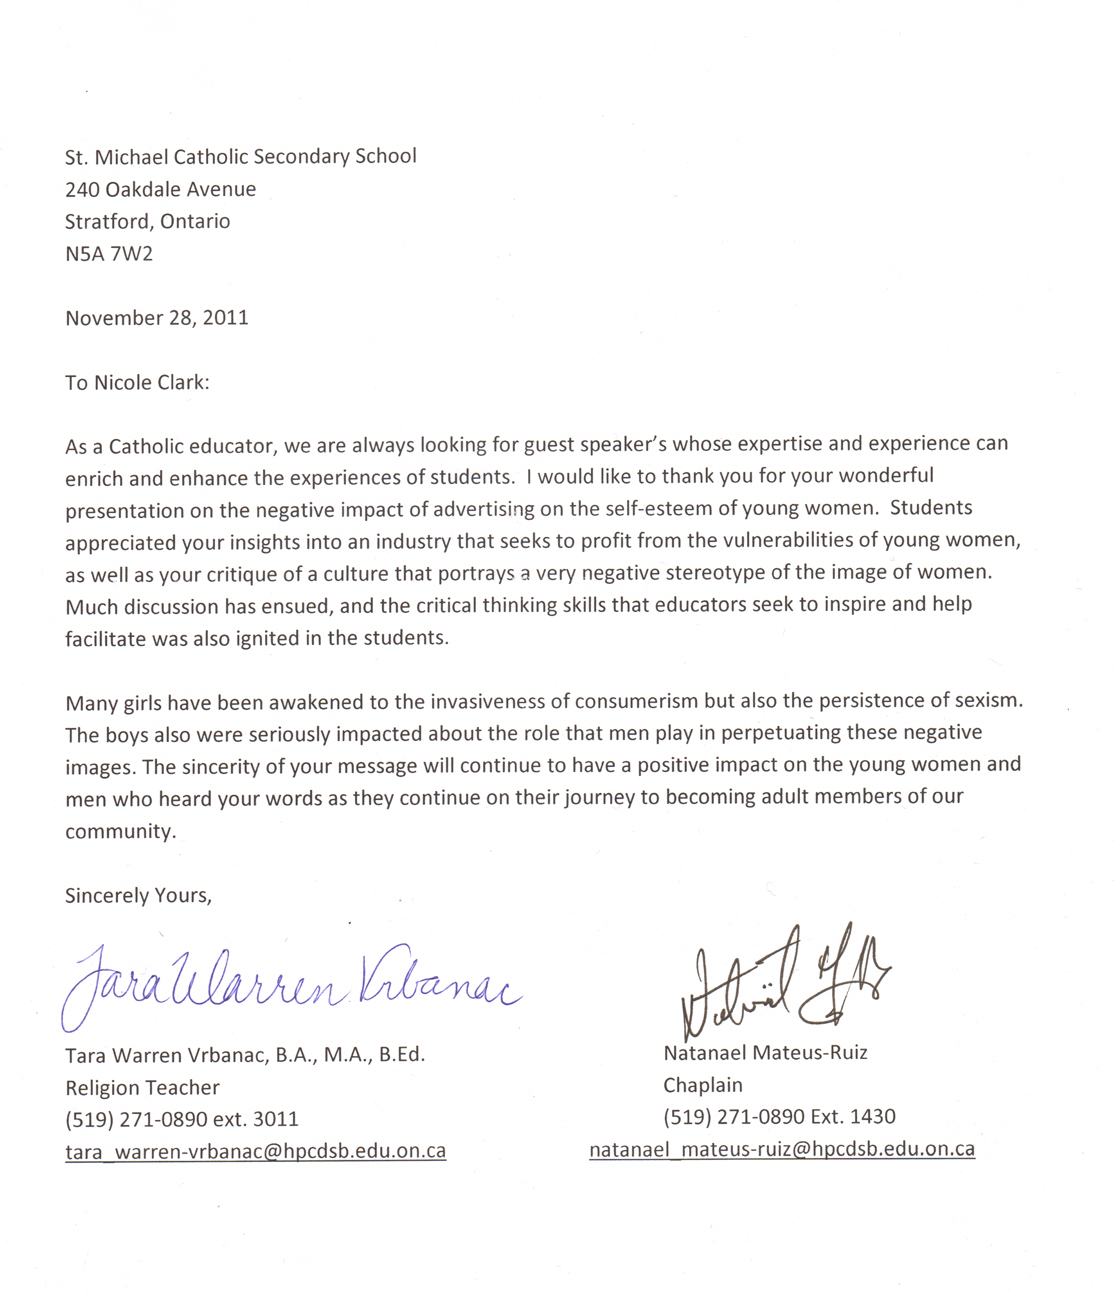 Letter Of Recommendation Thank You Image Collections  Letter Format